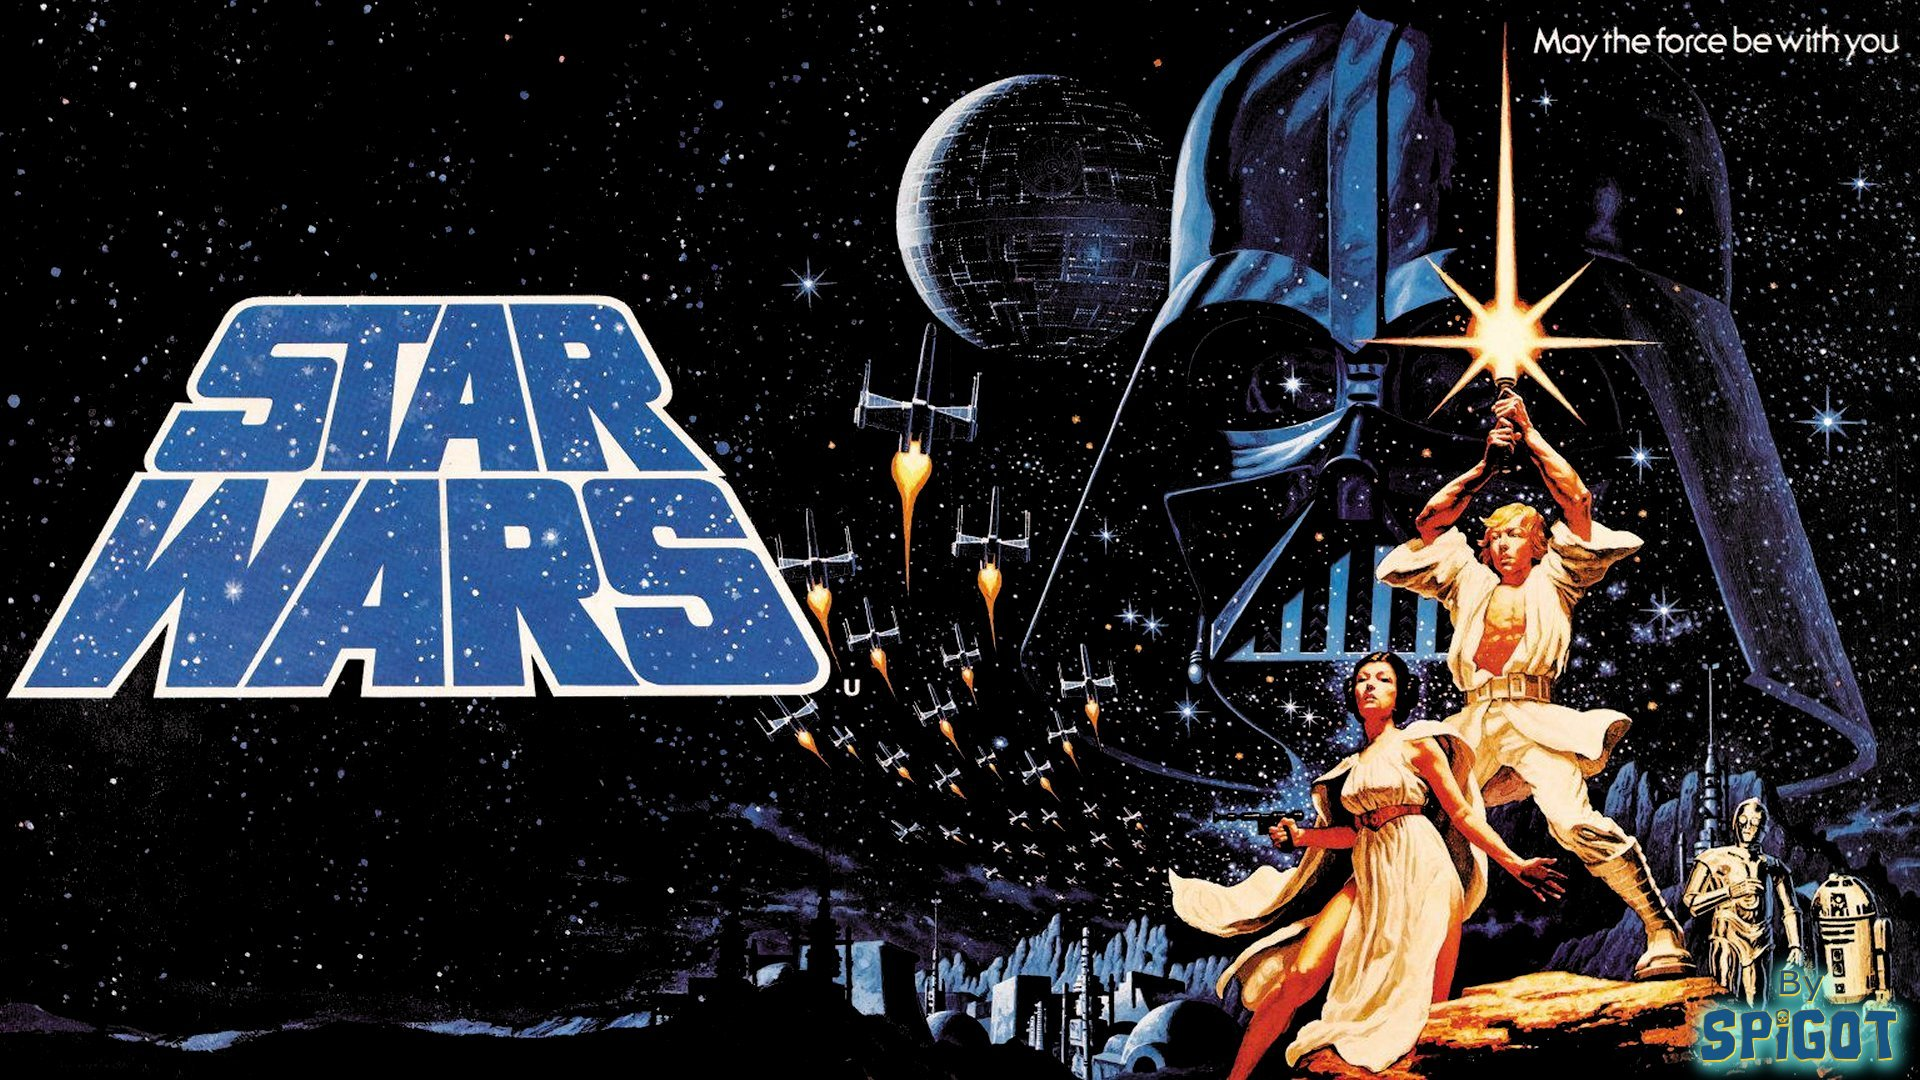 Star Wars Hd Wallpapers - WallpaperSafari